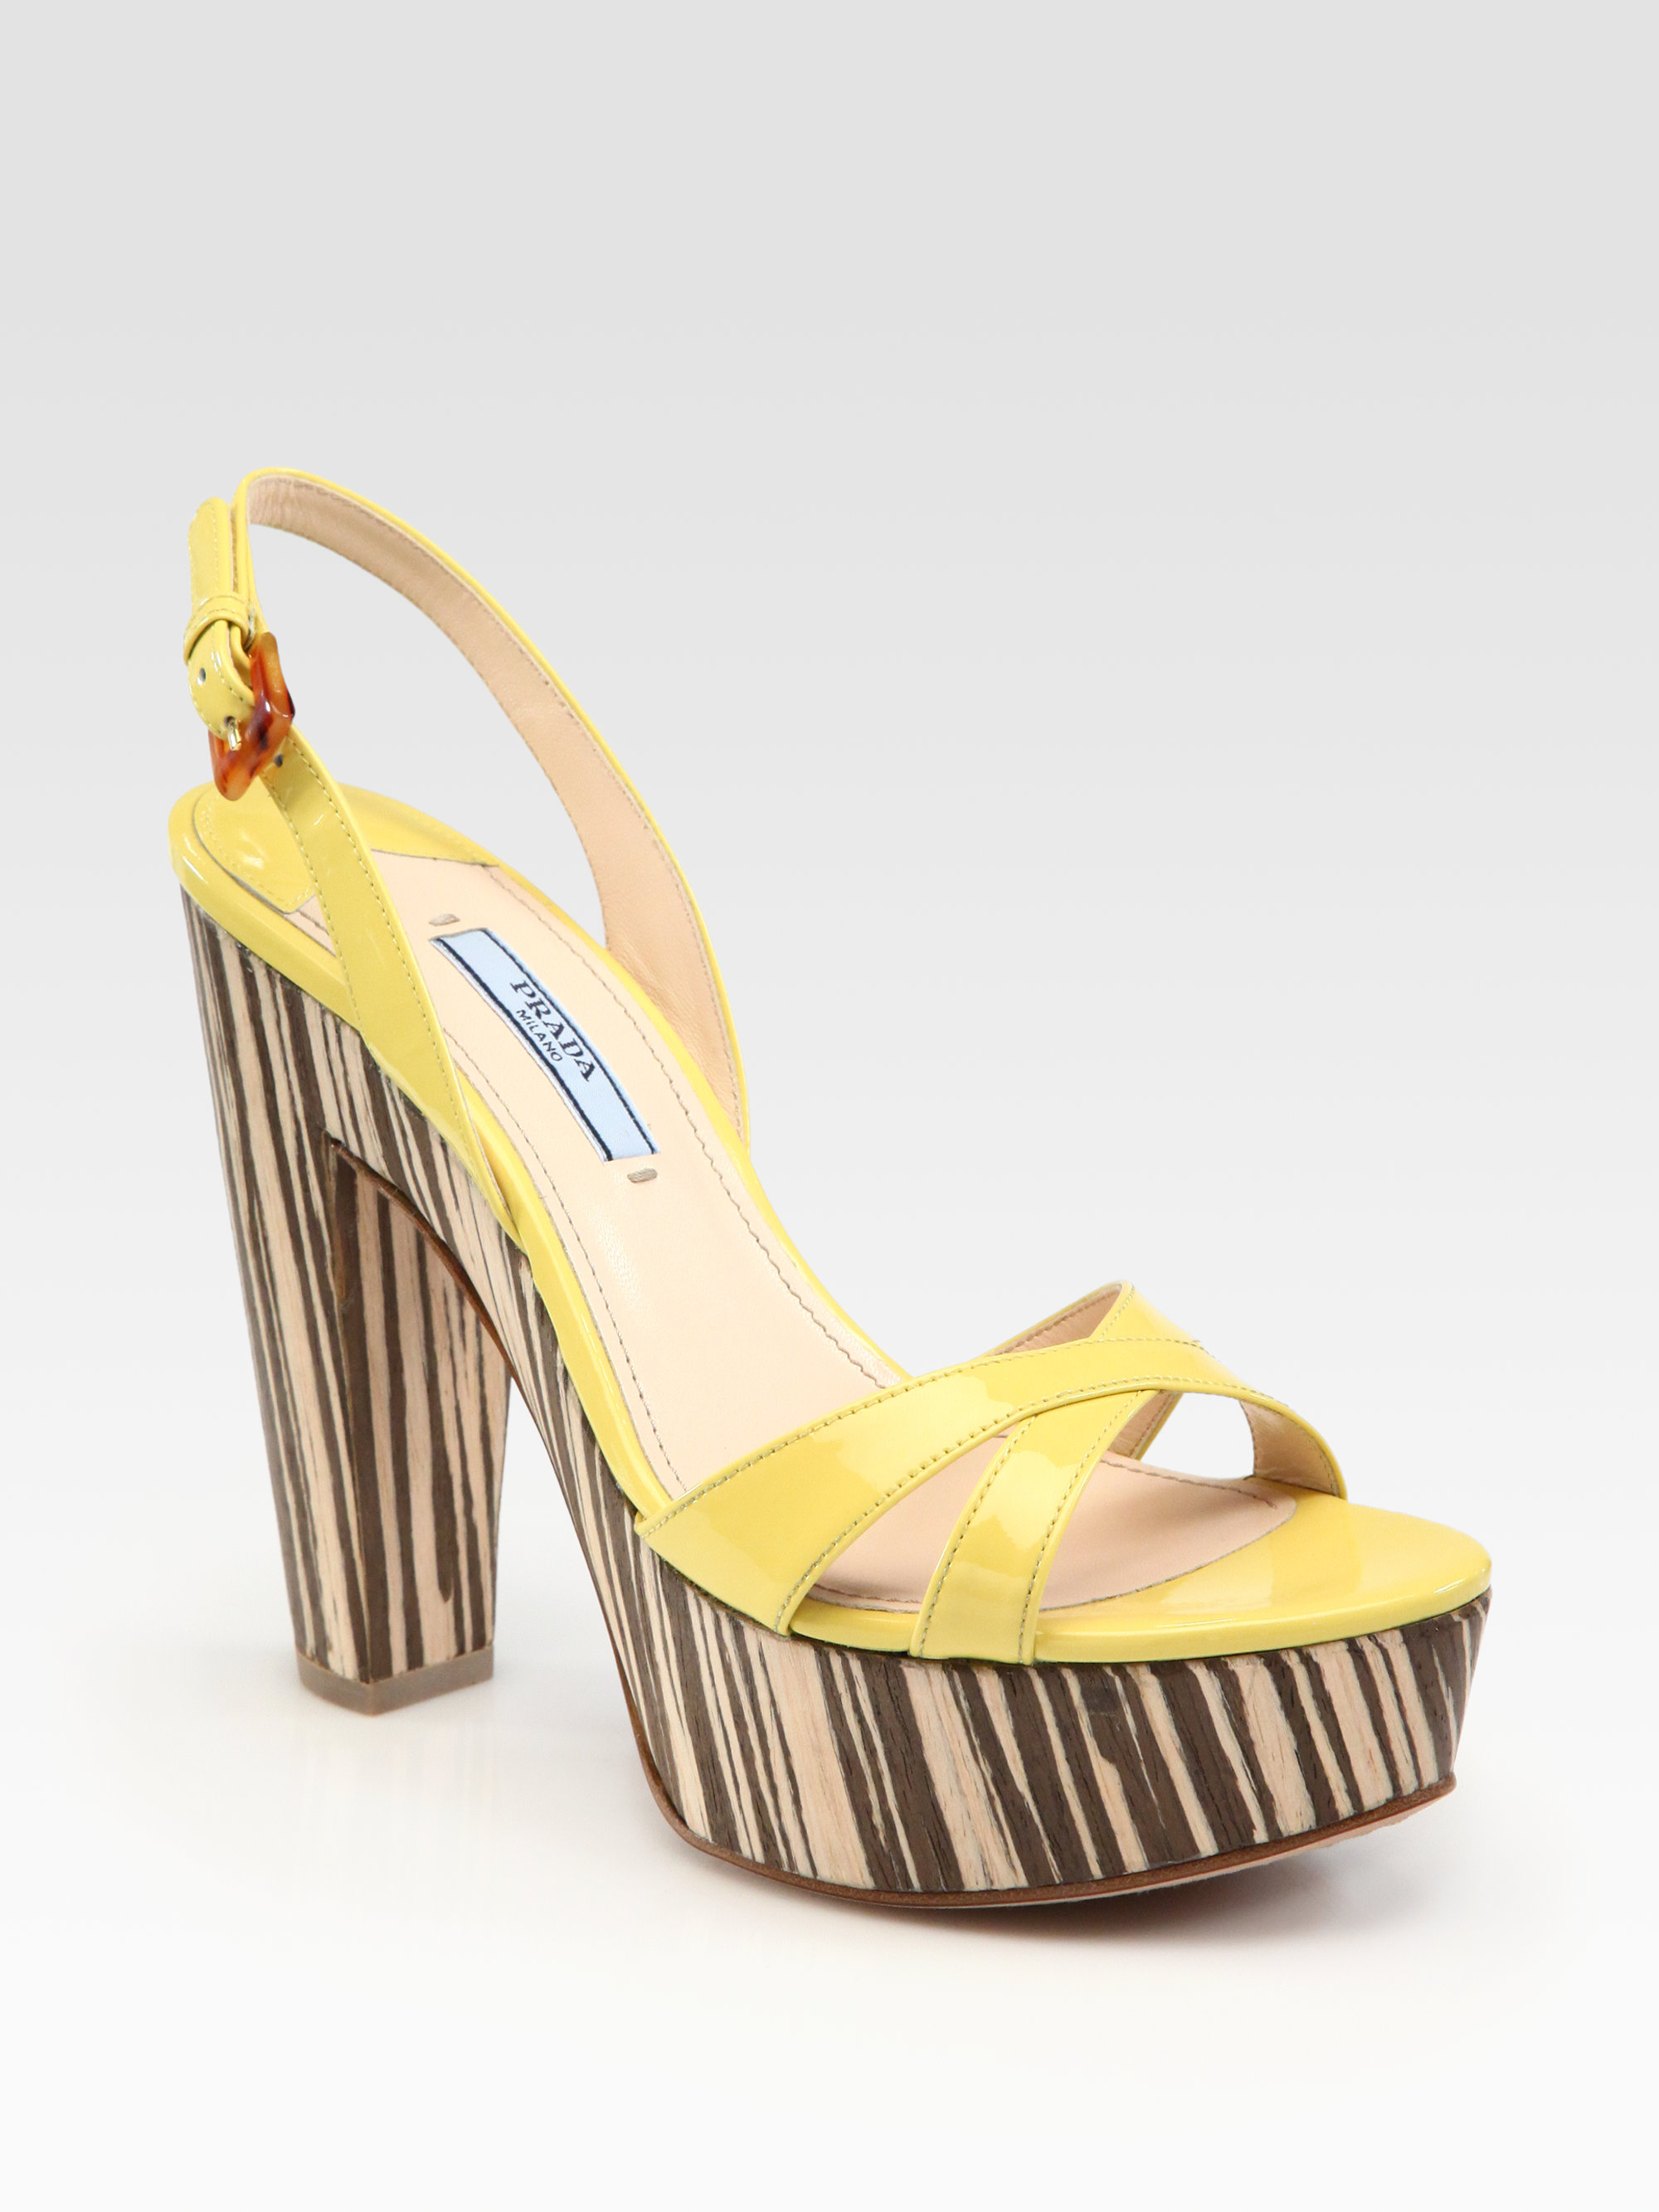 566530a9ee6 Lyst - Prada Patent Leather and Wood Slingback Sandals in Yellow